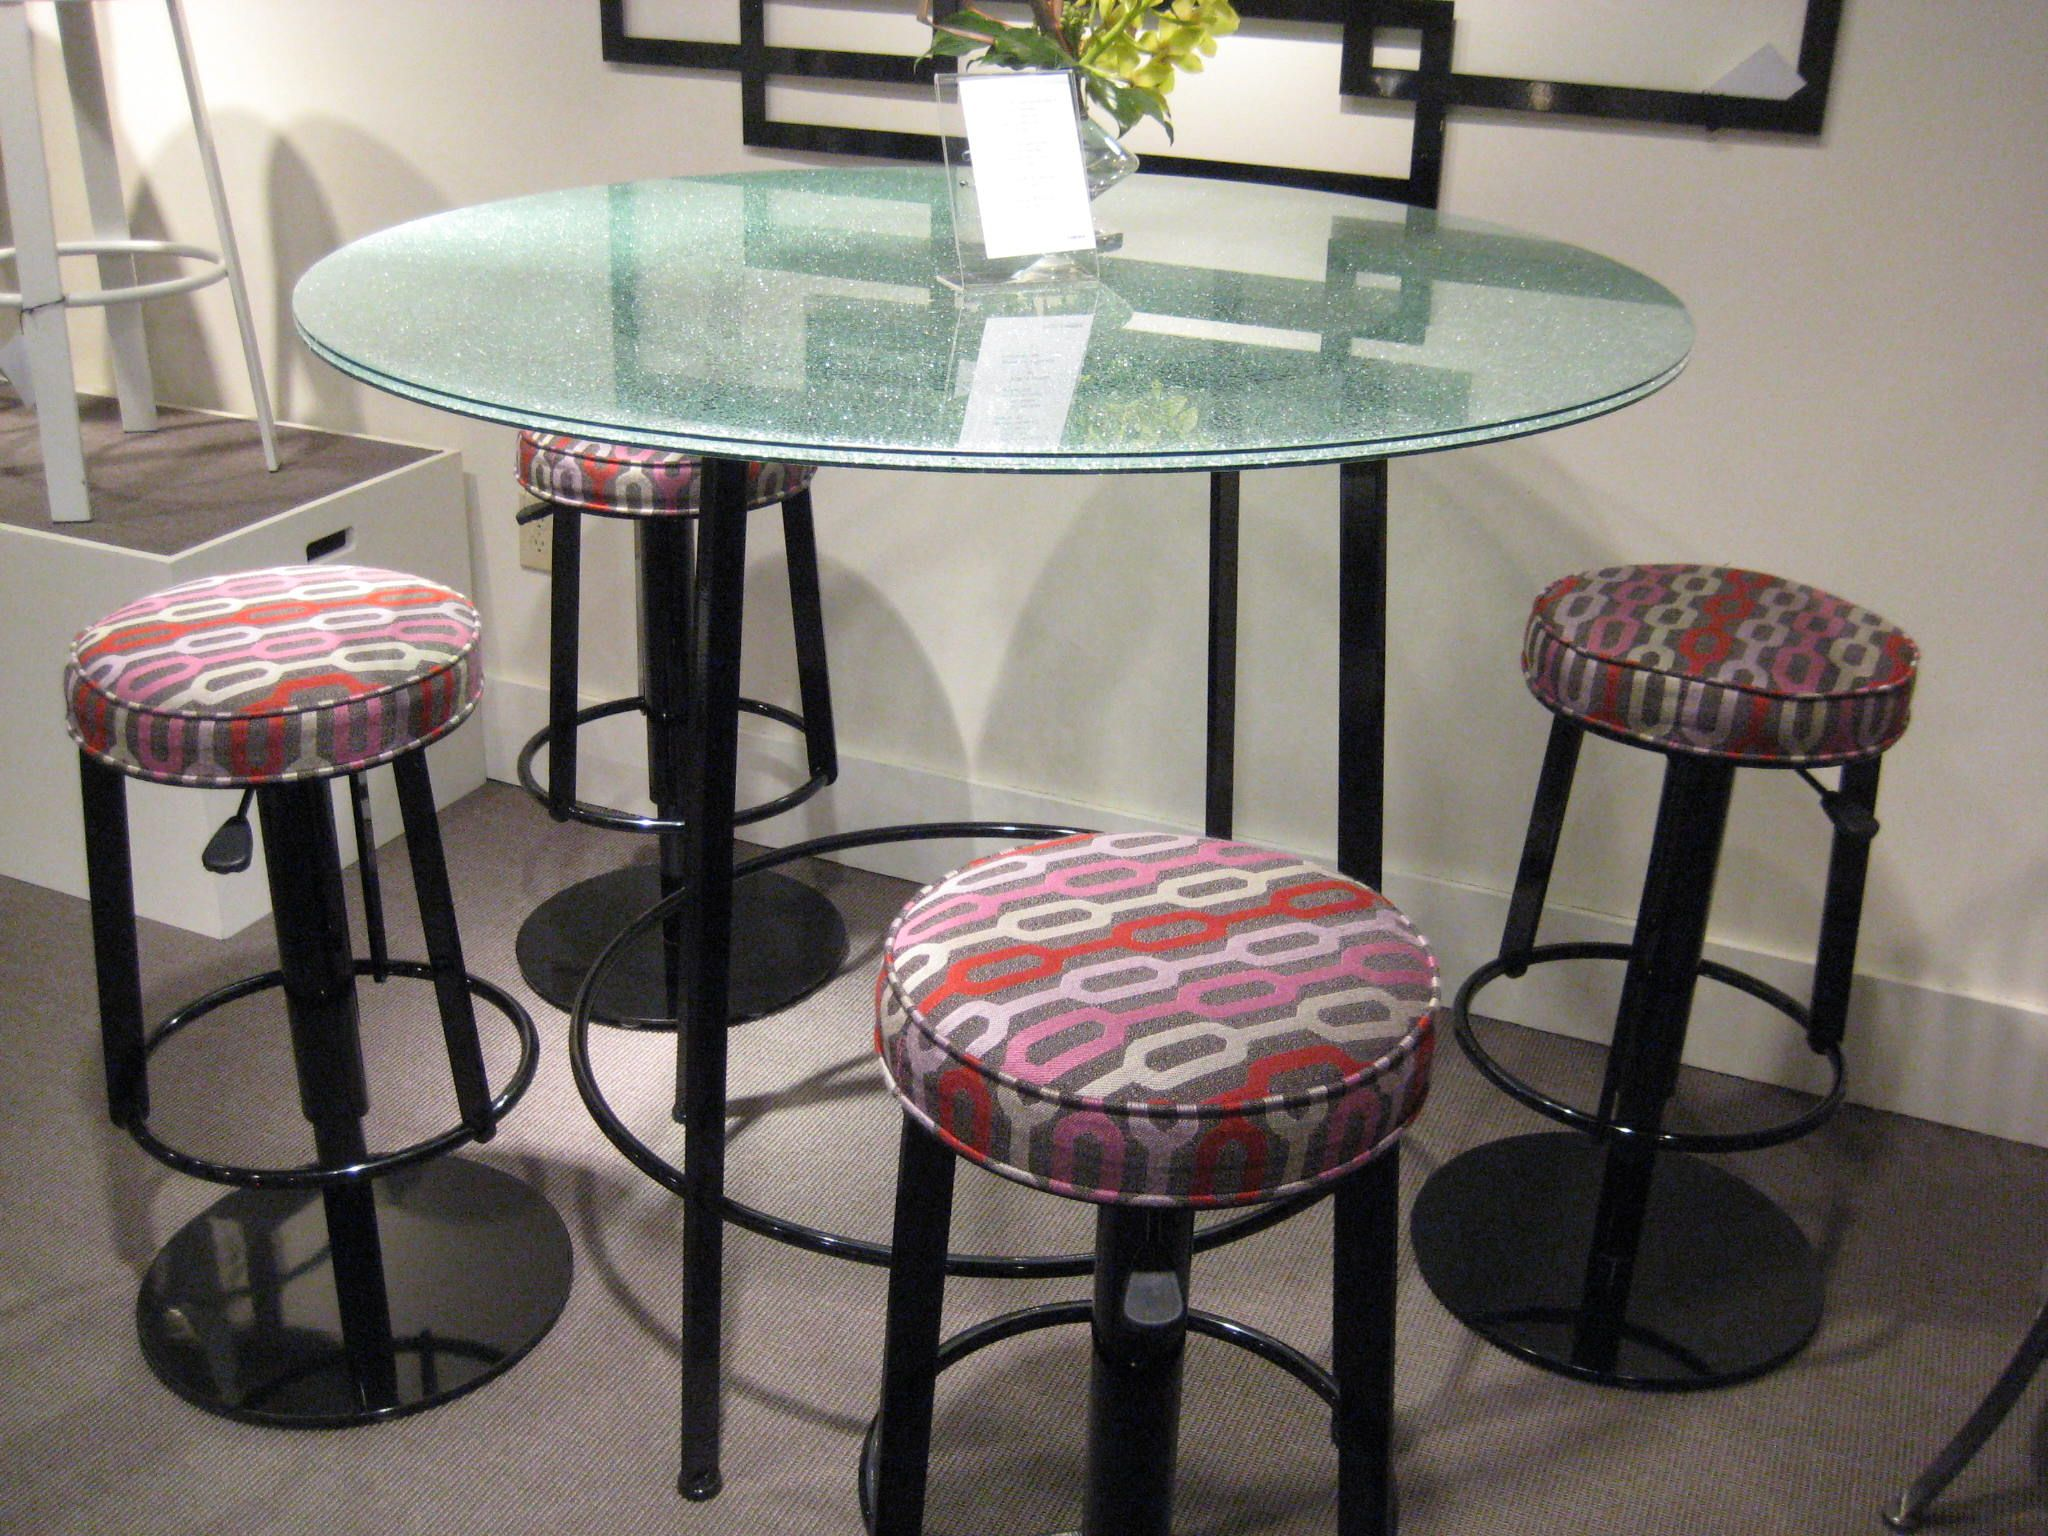 johnston casuals  best johnston casuals furniture images on  - johnston casuals